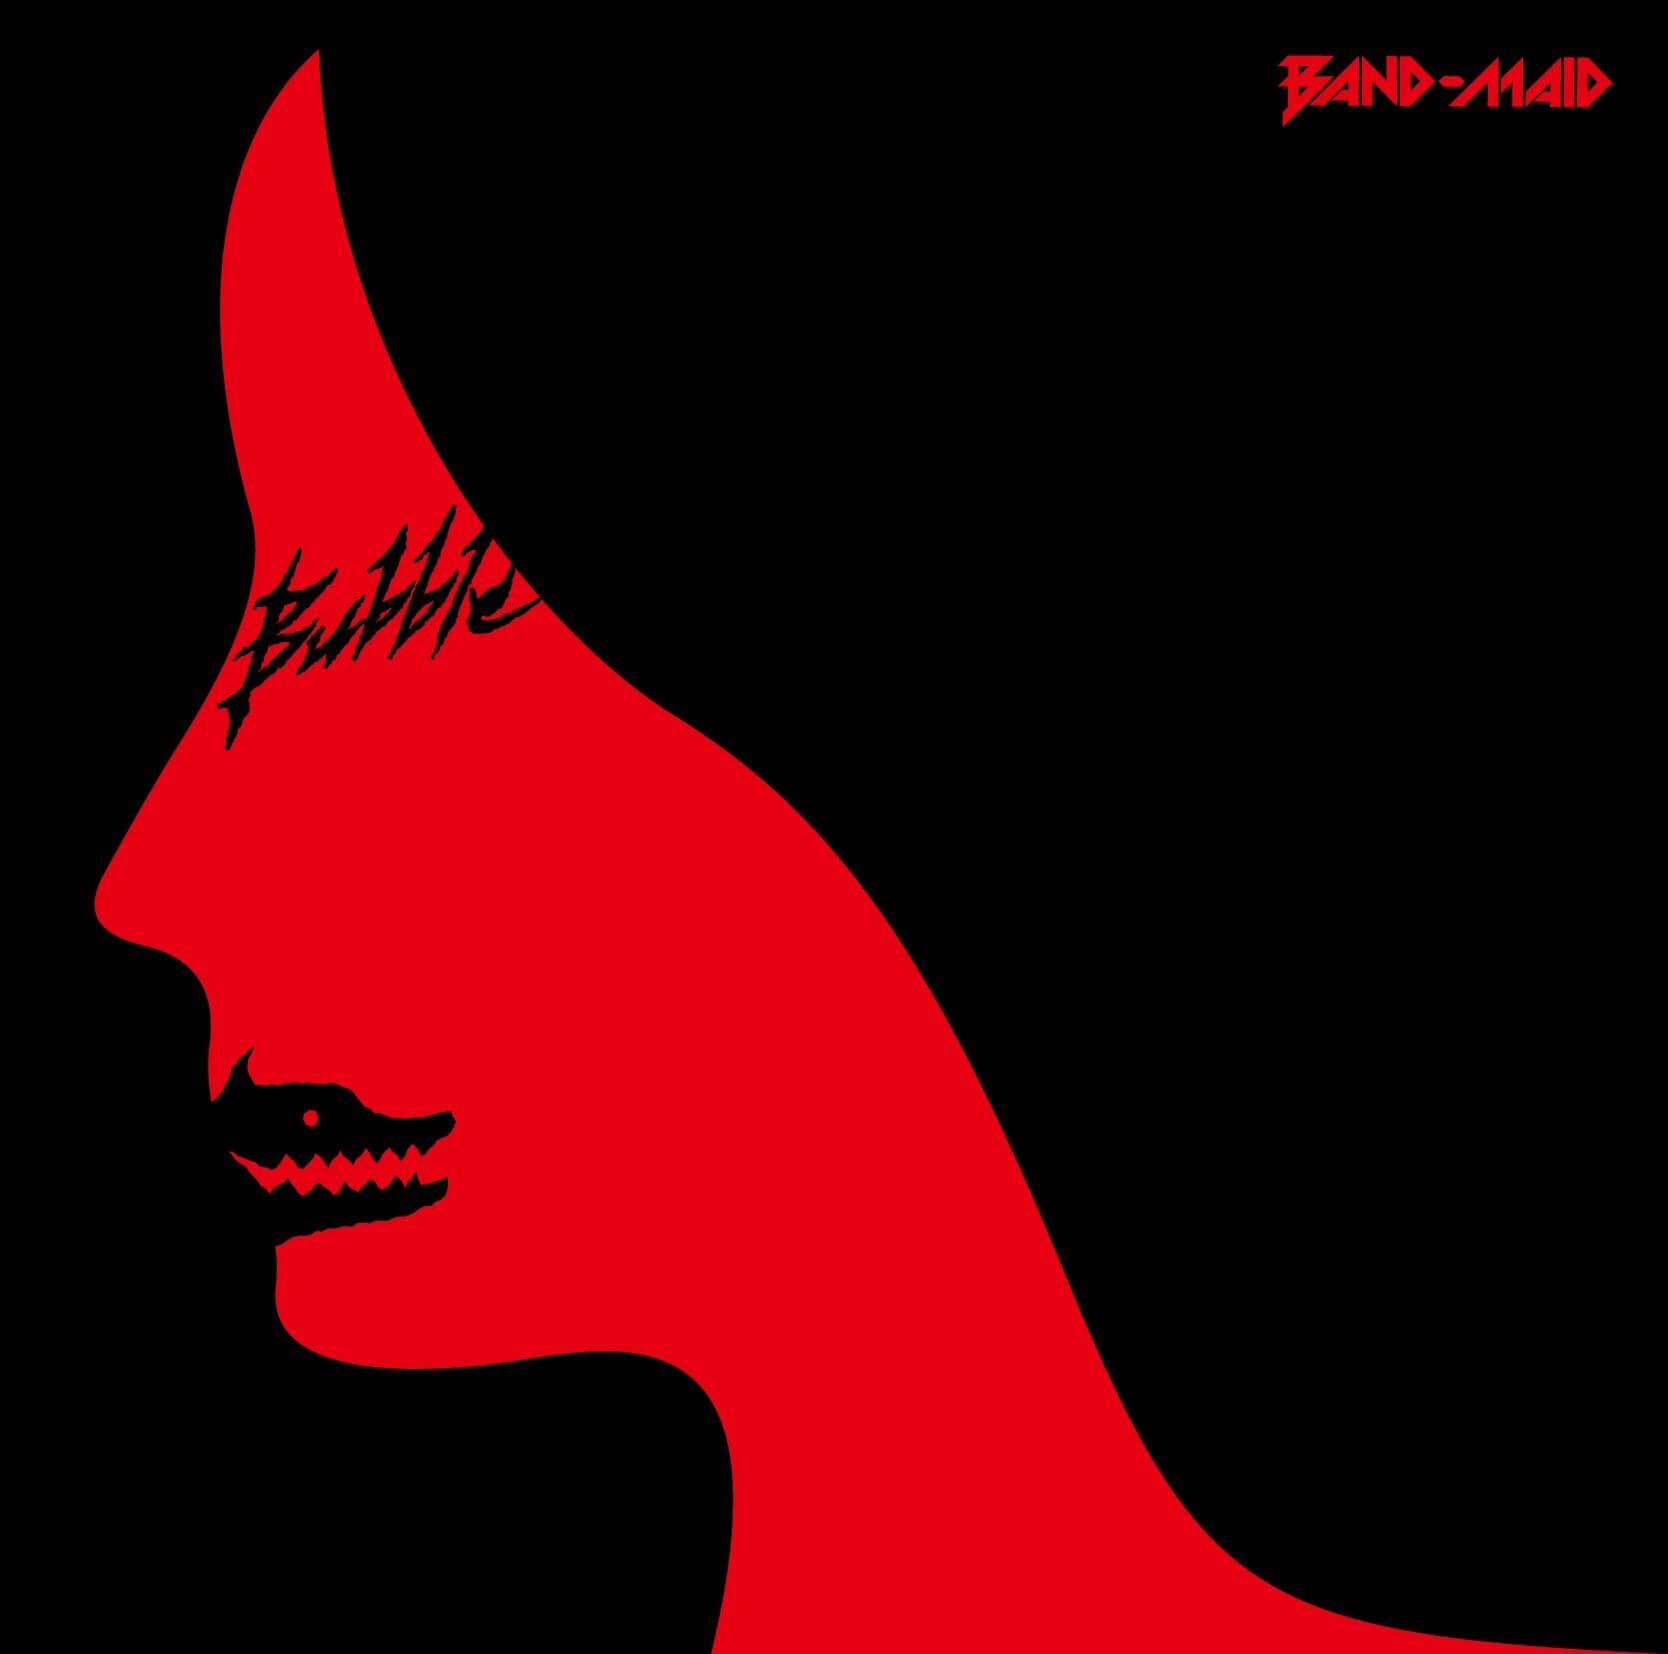 BAND-MAID「Bubble」